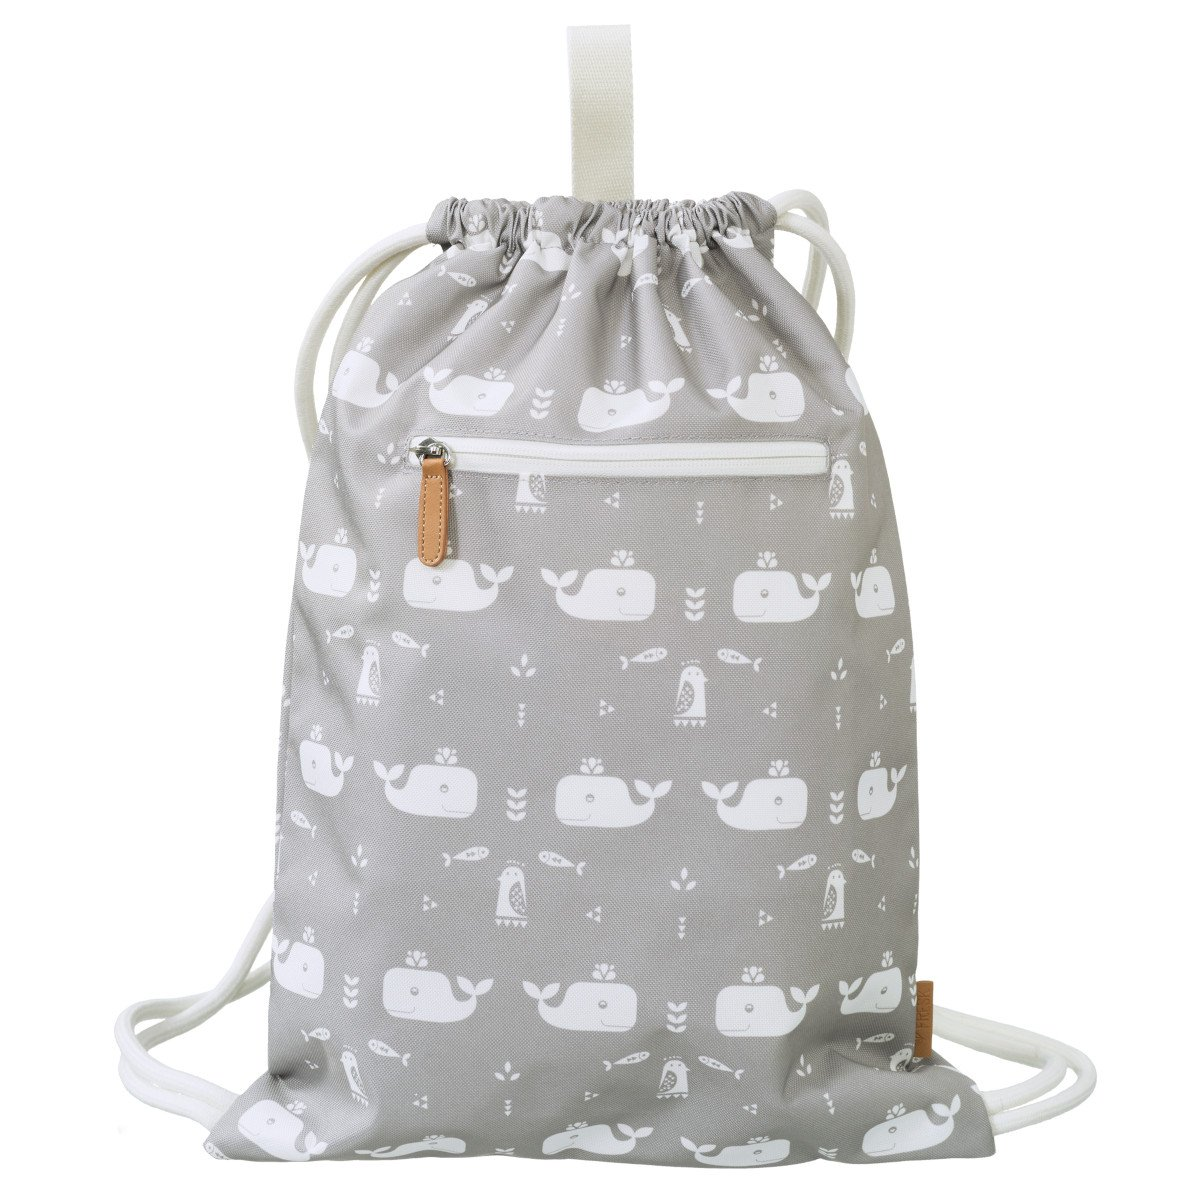 Waterproof Grey Whale Fresk Bag for Children and Sports